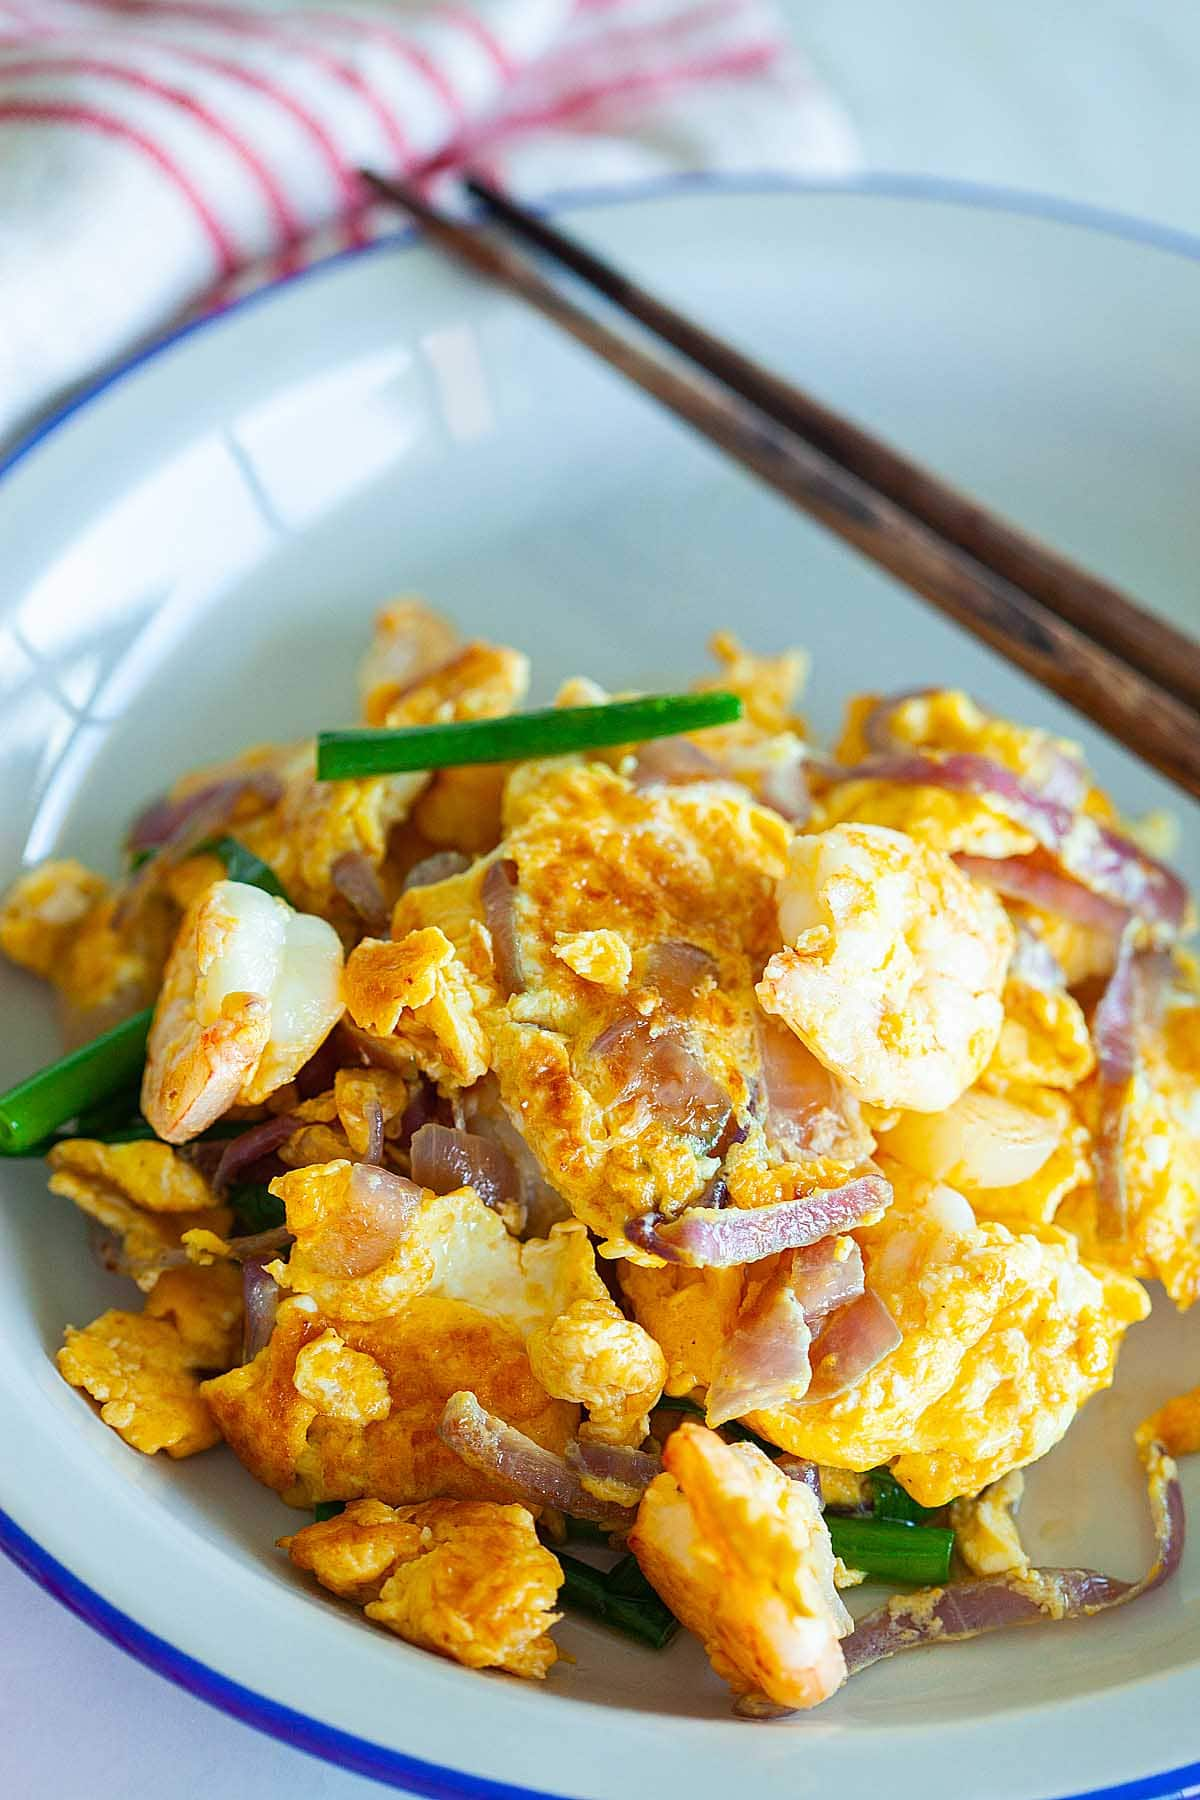 Shrimp omelette with onion.